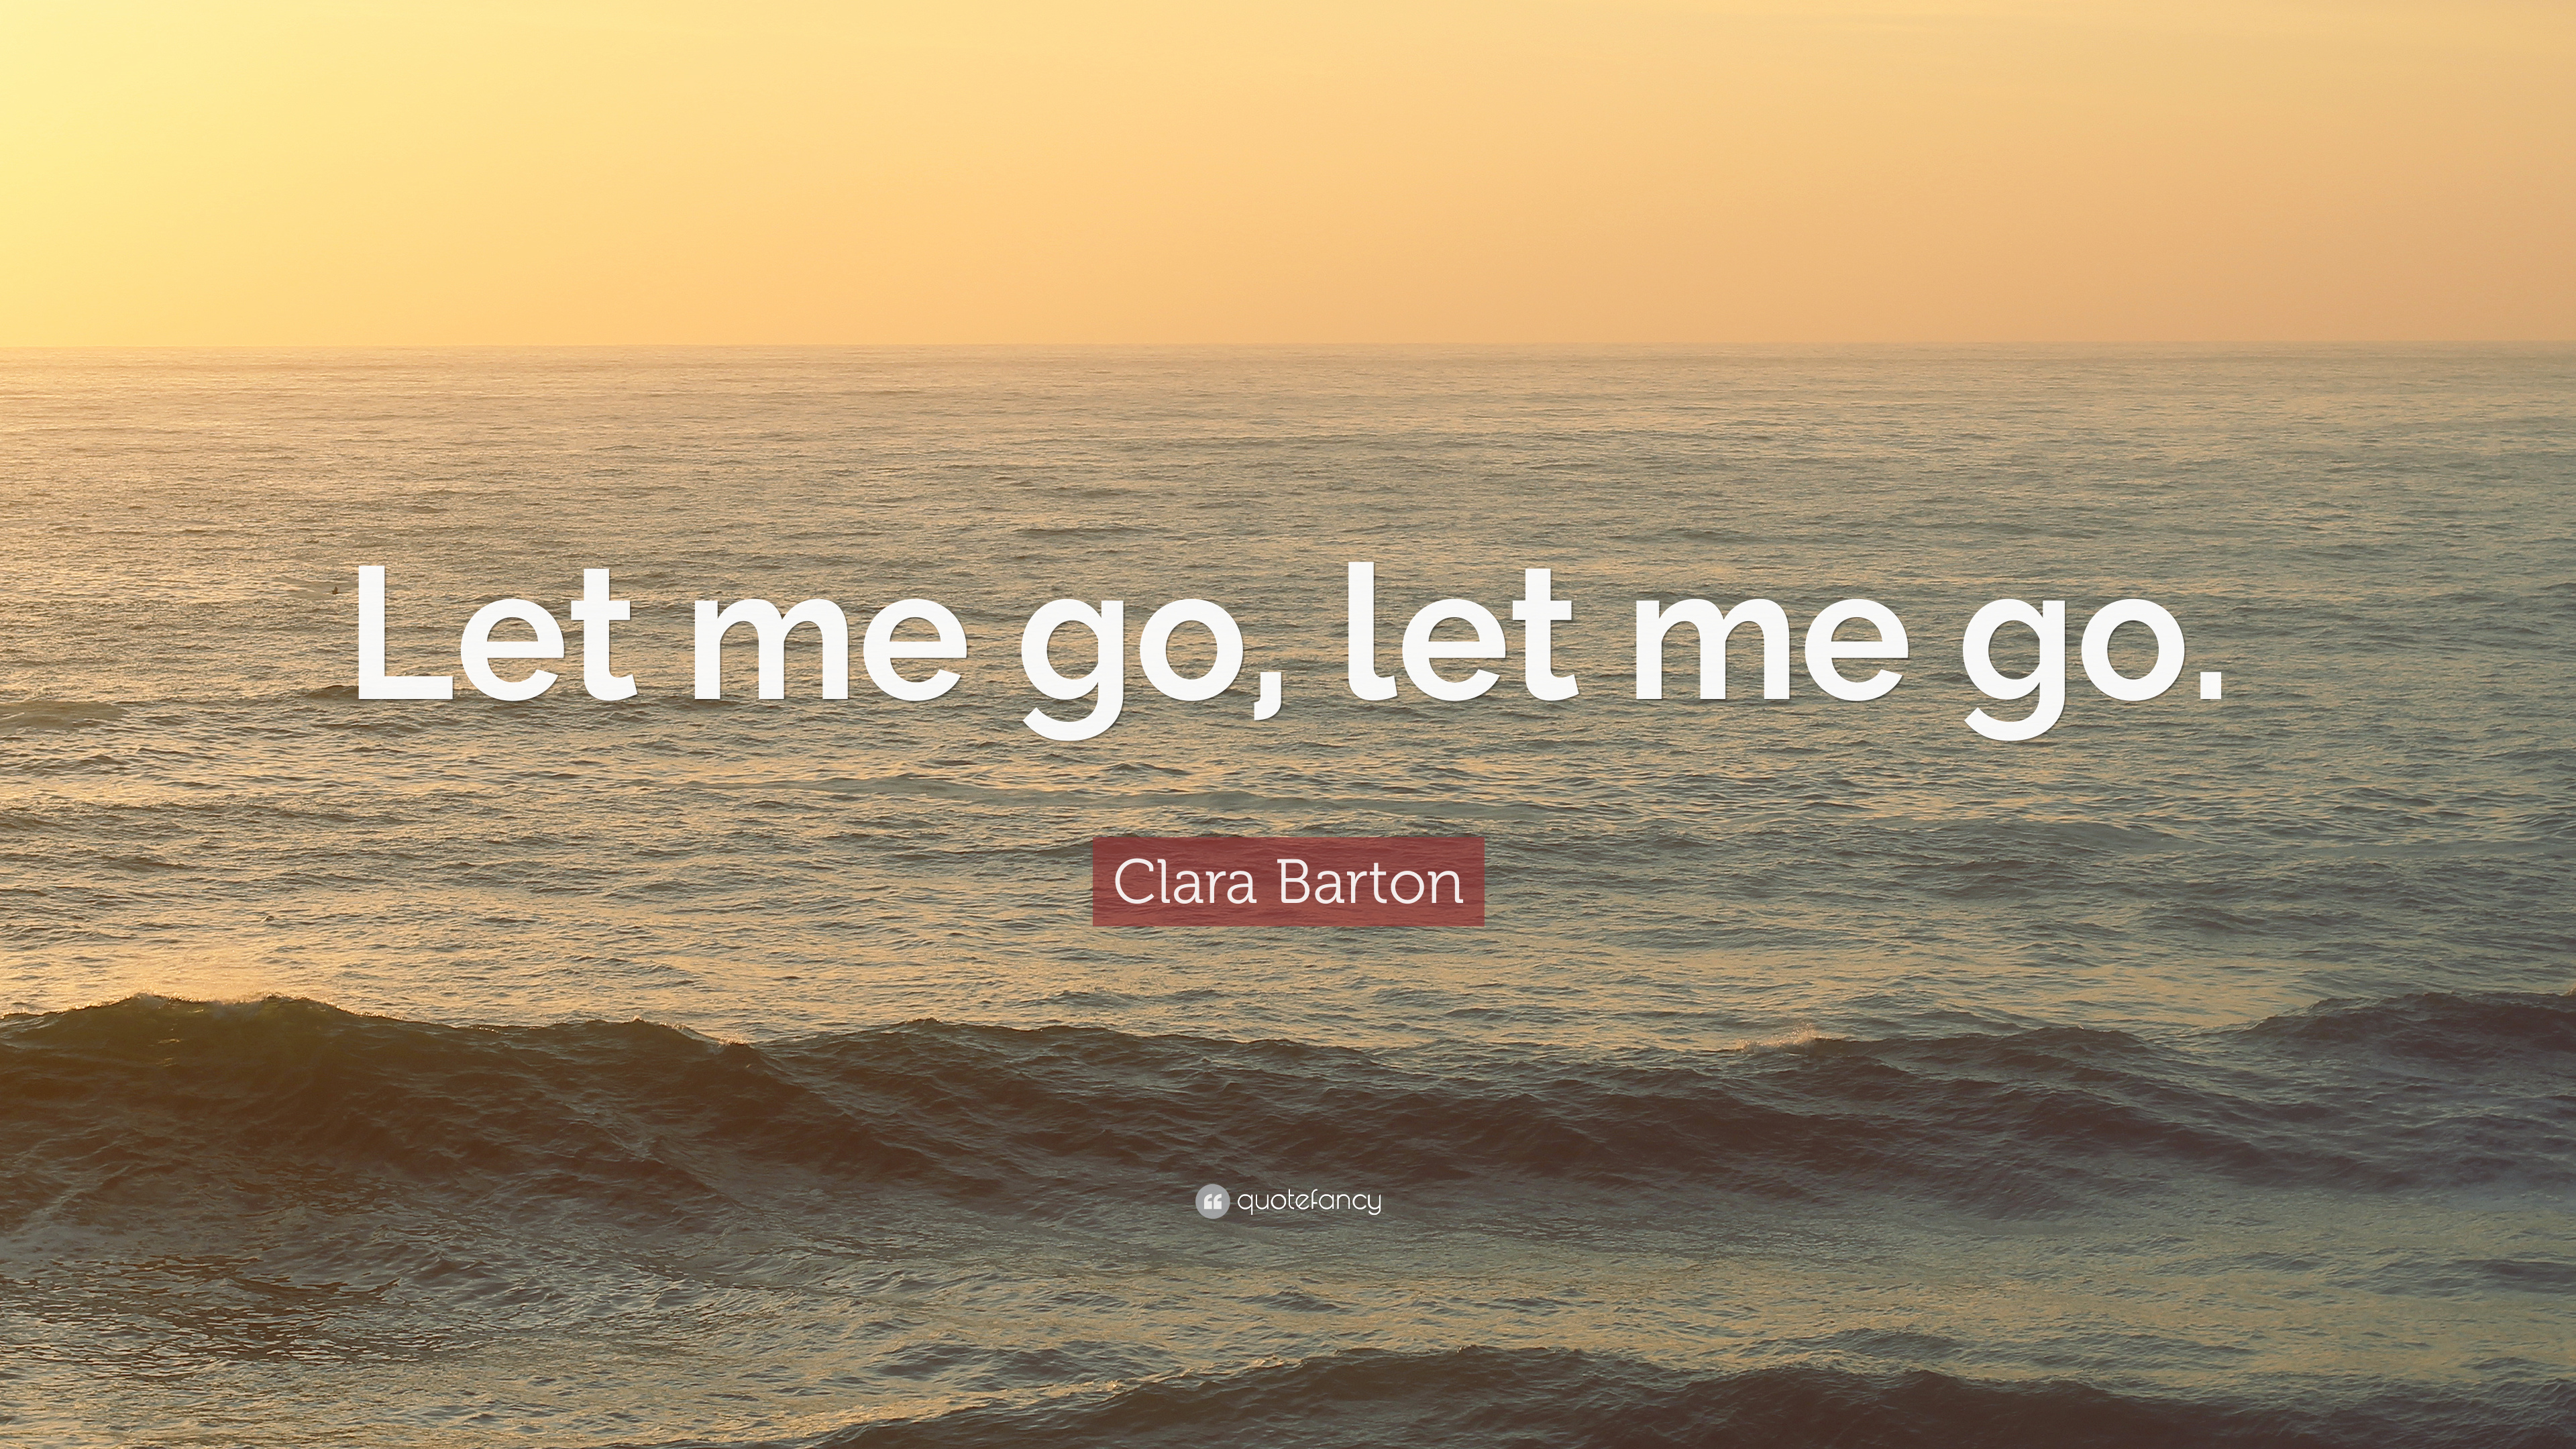 Clara Barton Quote Let Me Go Let Me Go 9 Wallpapers Quotefancy